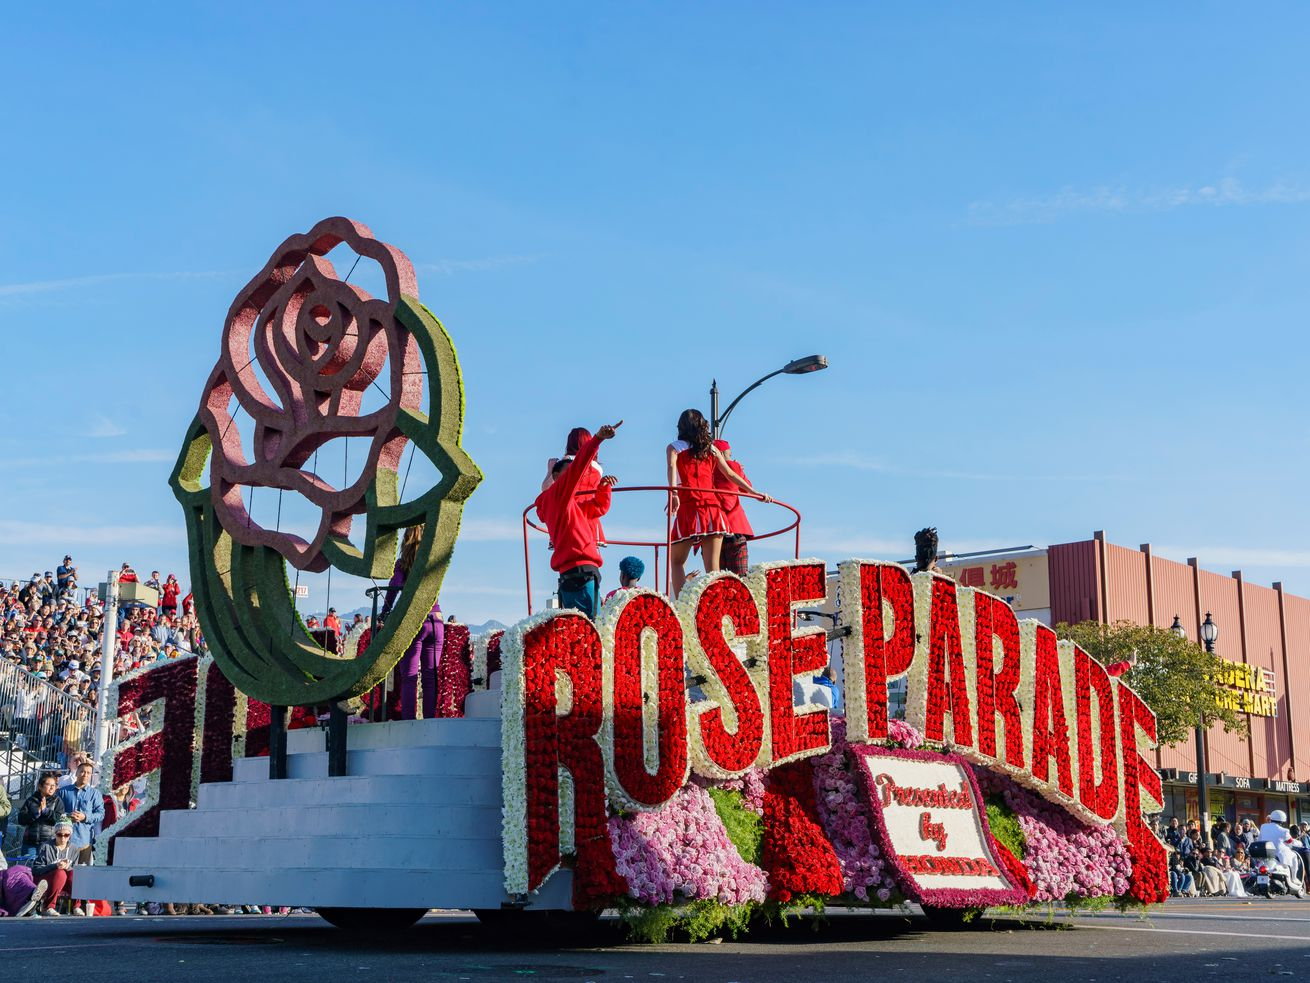 The Rose Parade starts at 8 a.m. on New Year's Day.